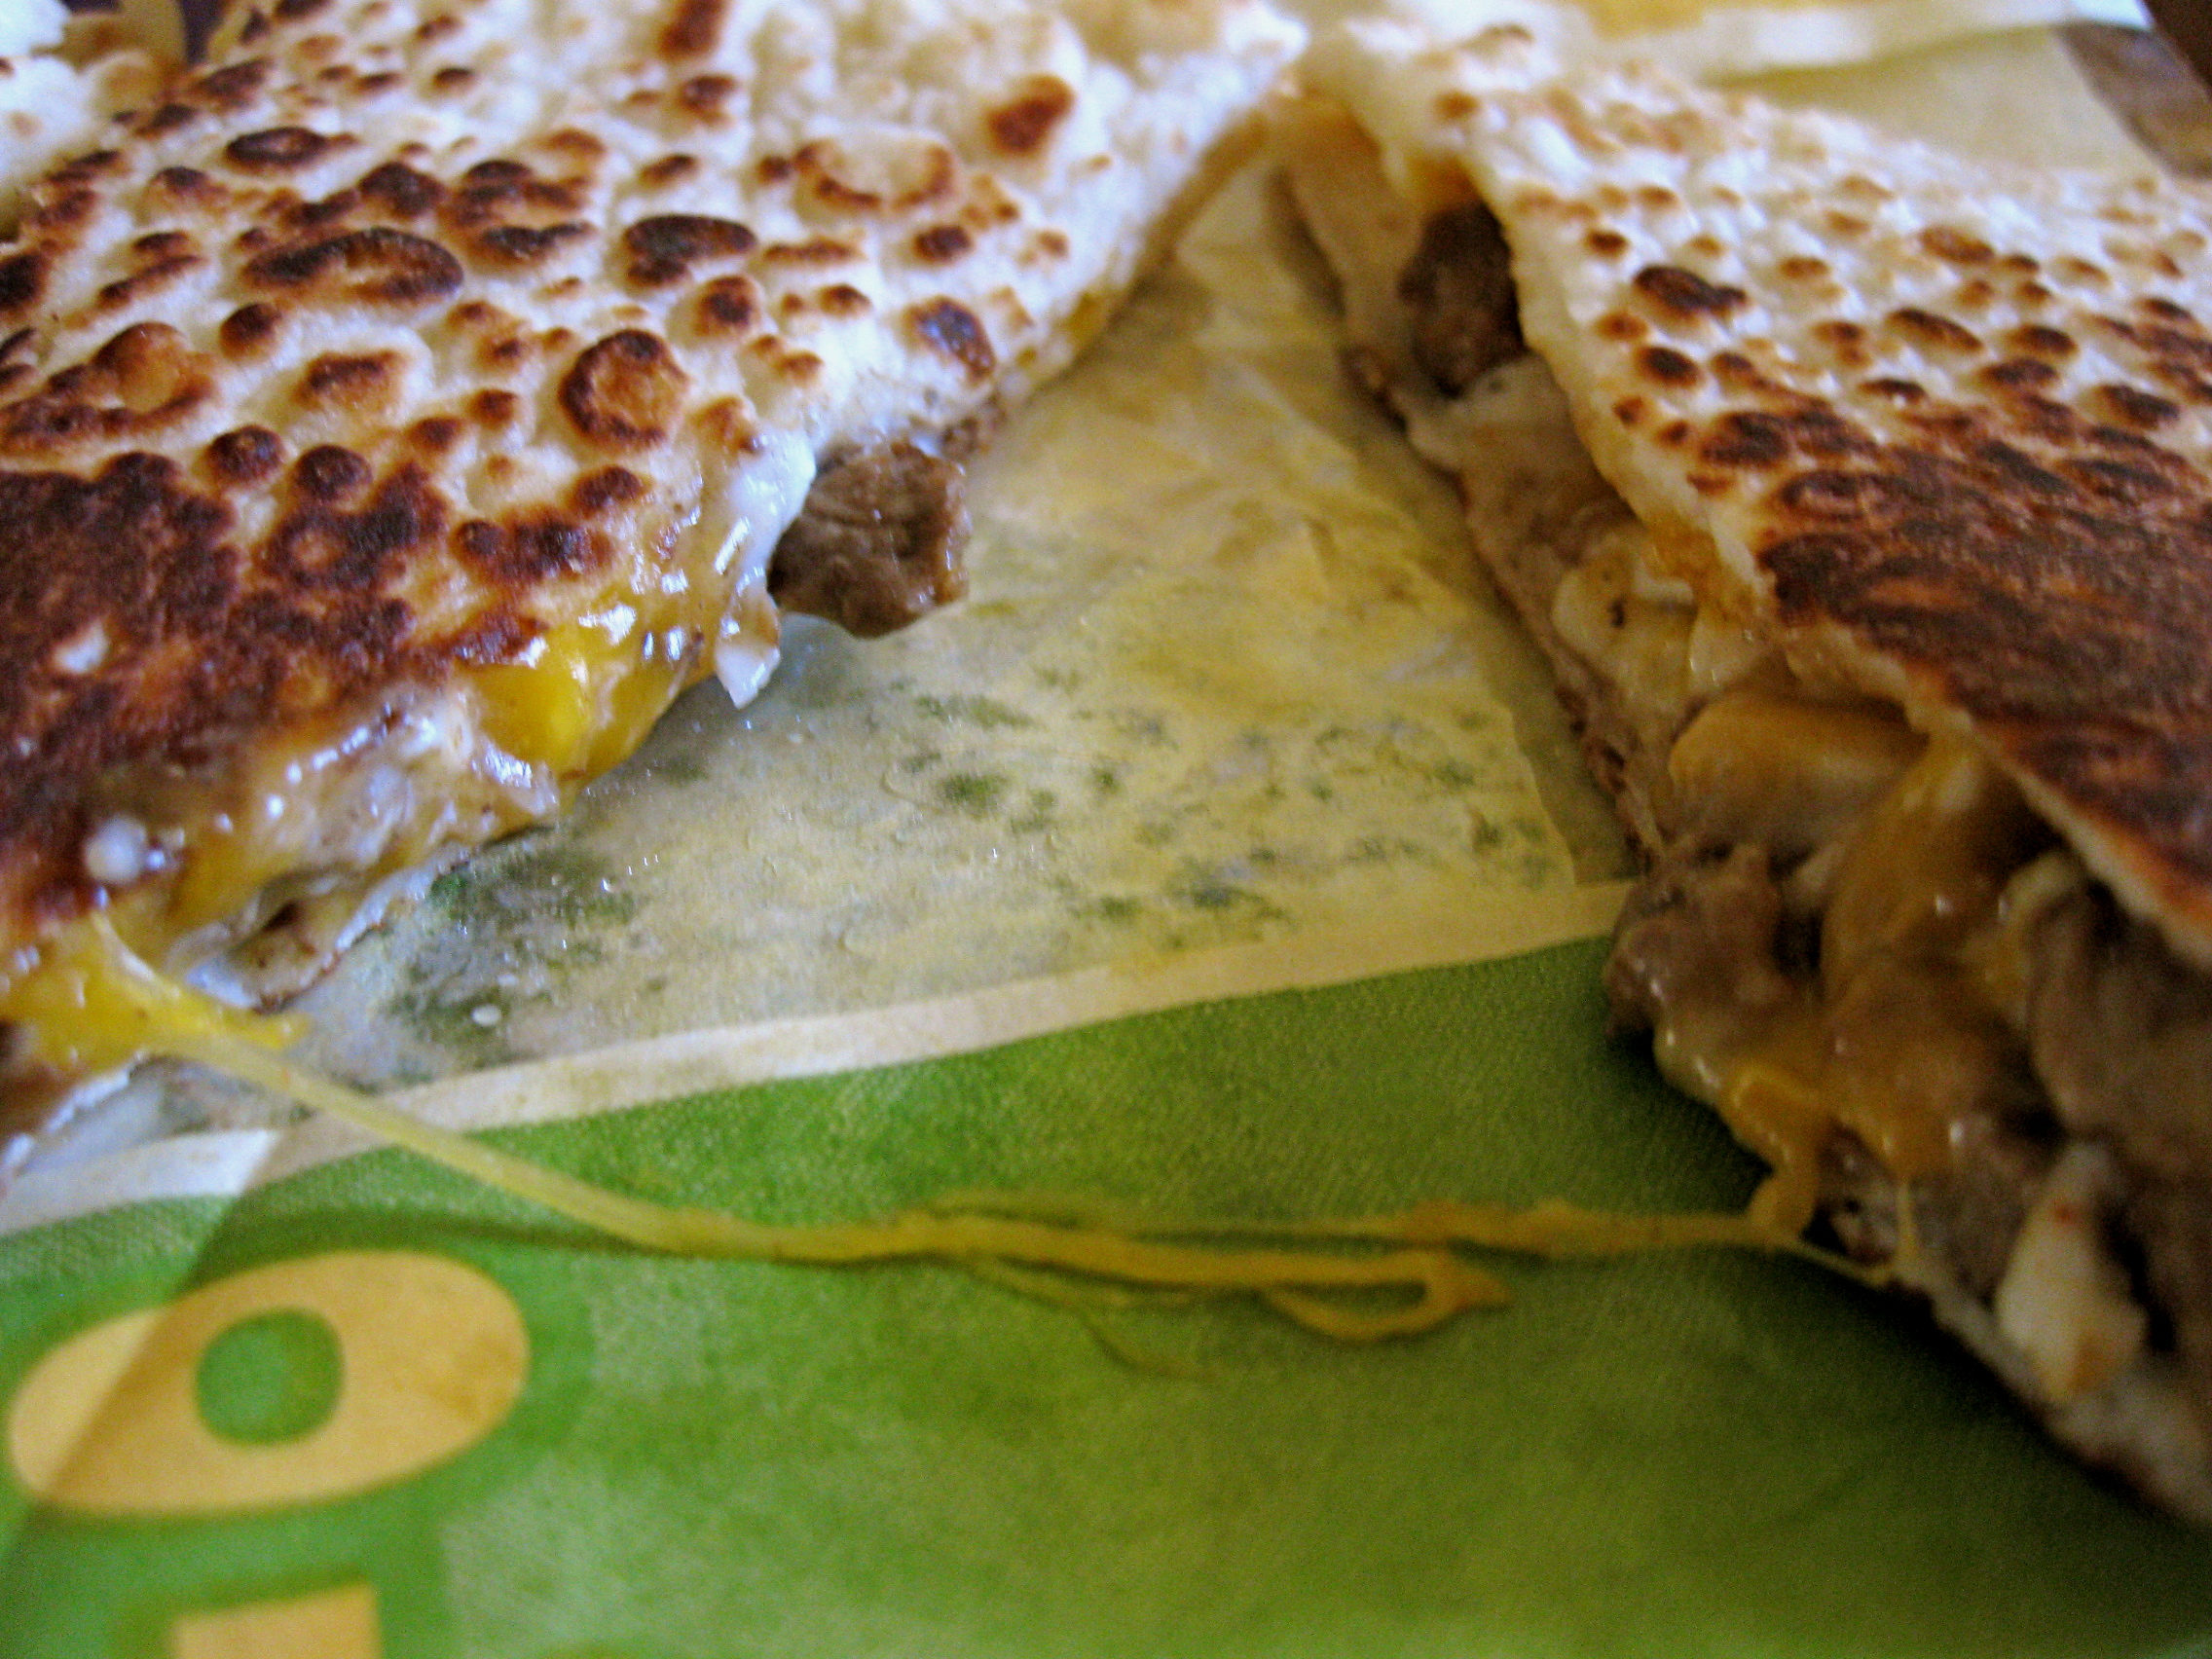 Grande Quesadilla from Taco Bell (close up)